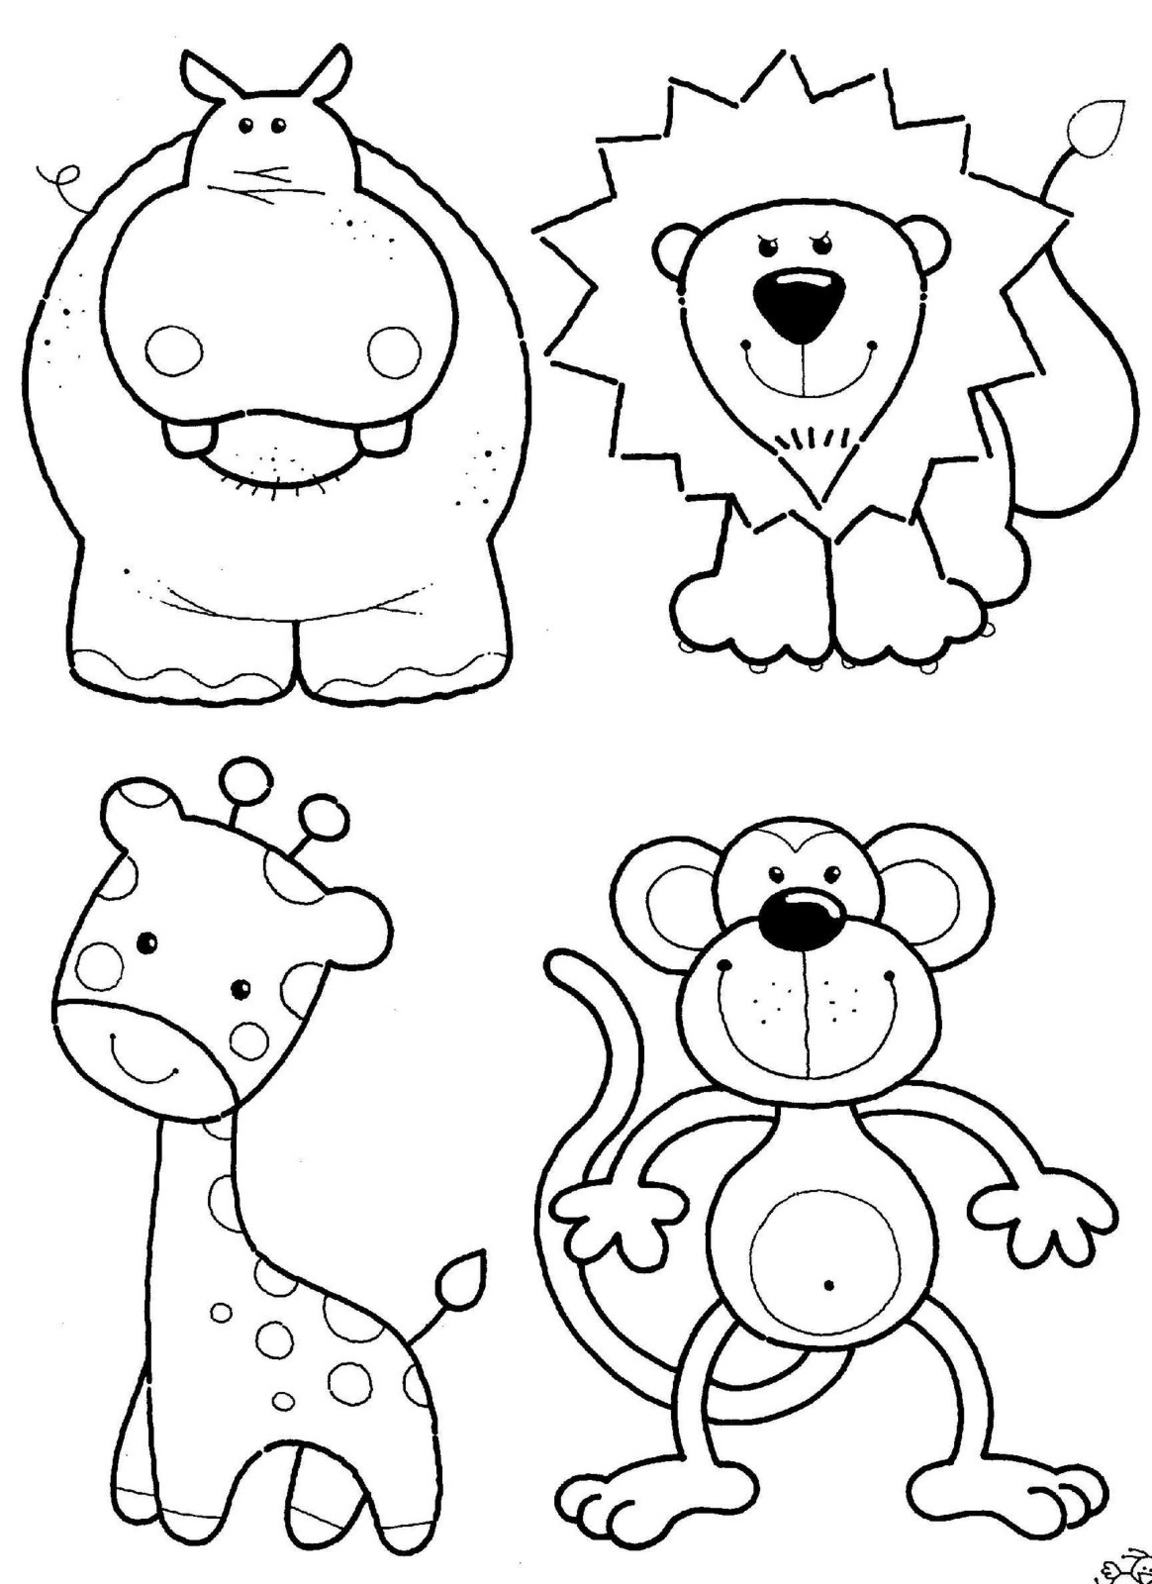 printable animal coloring pages jungle coloring pages best coloring pages for kids animal printable pages coloring